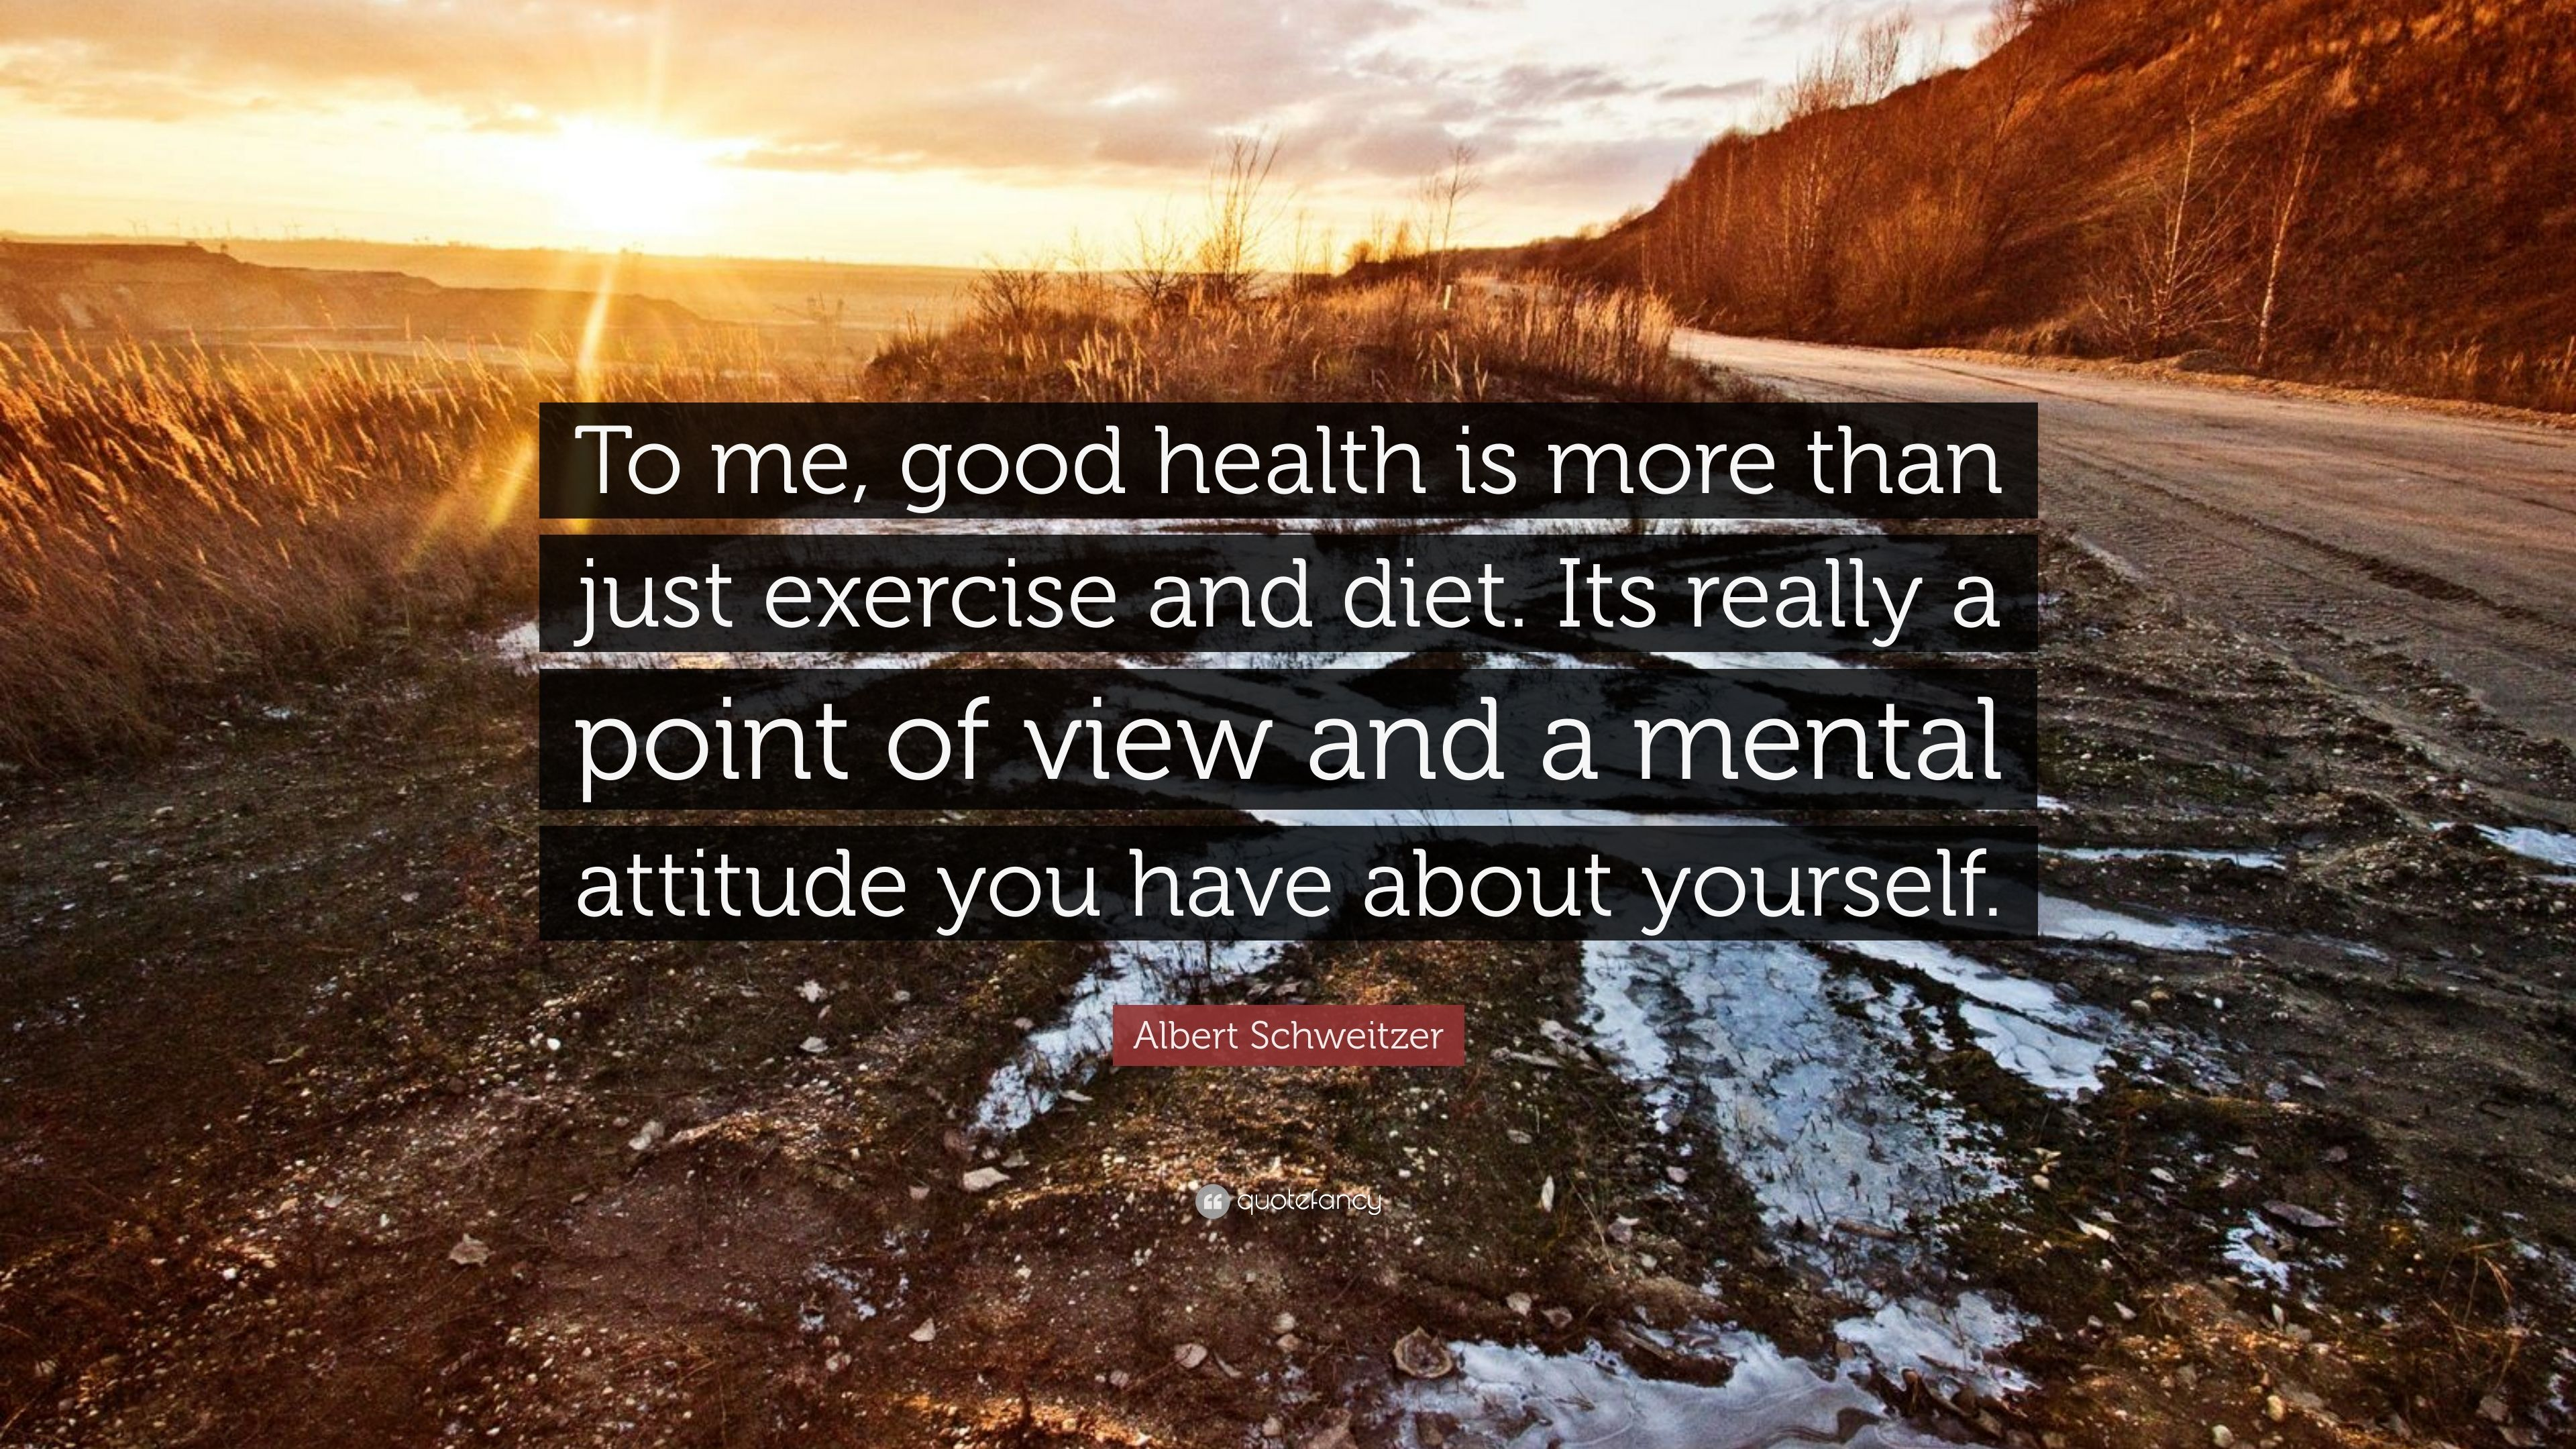 good health is more than just looking good @meathamski said in looking for anime that is more than just good  if you are looking for something purely  but can affect their health and lifestyles if .